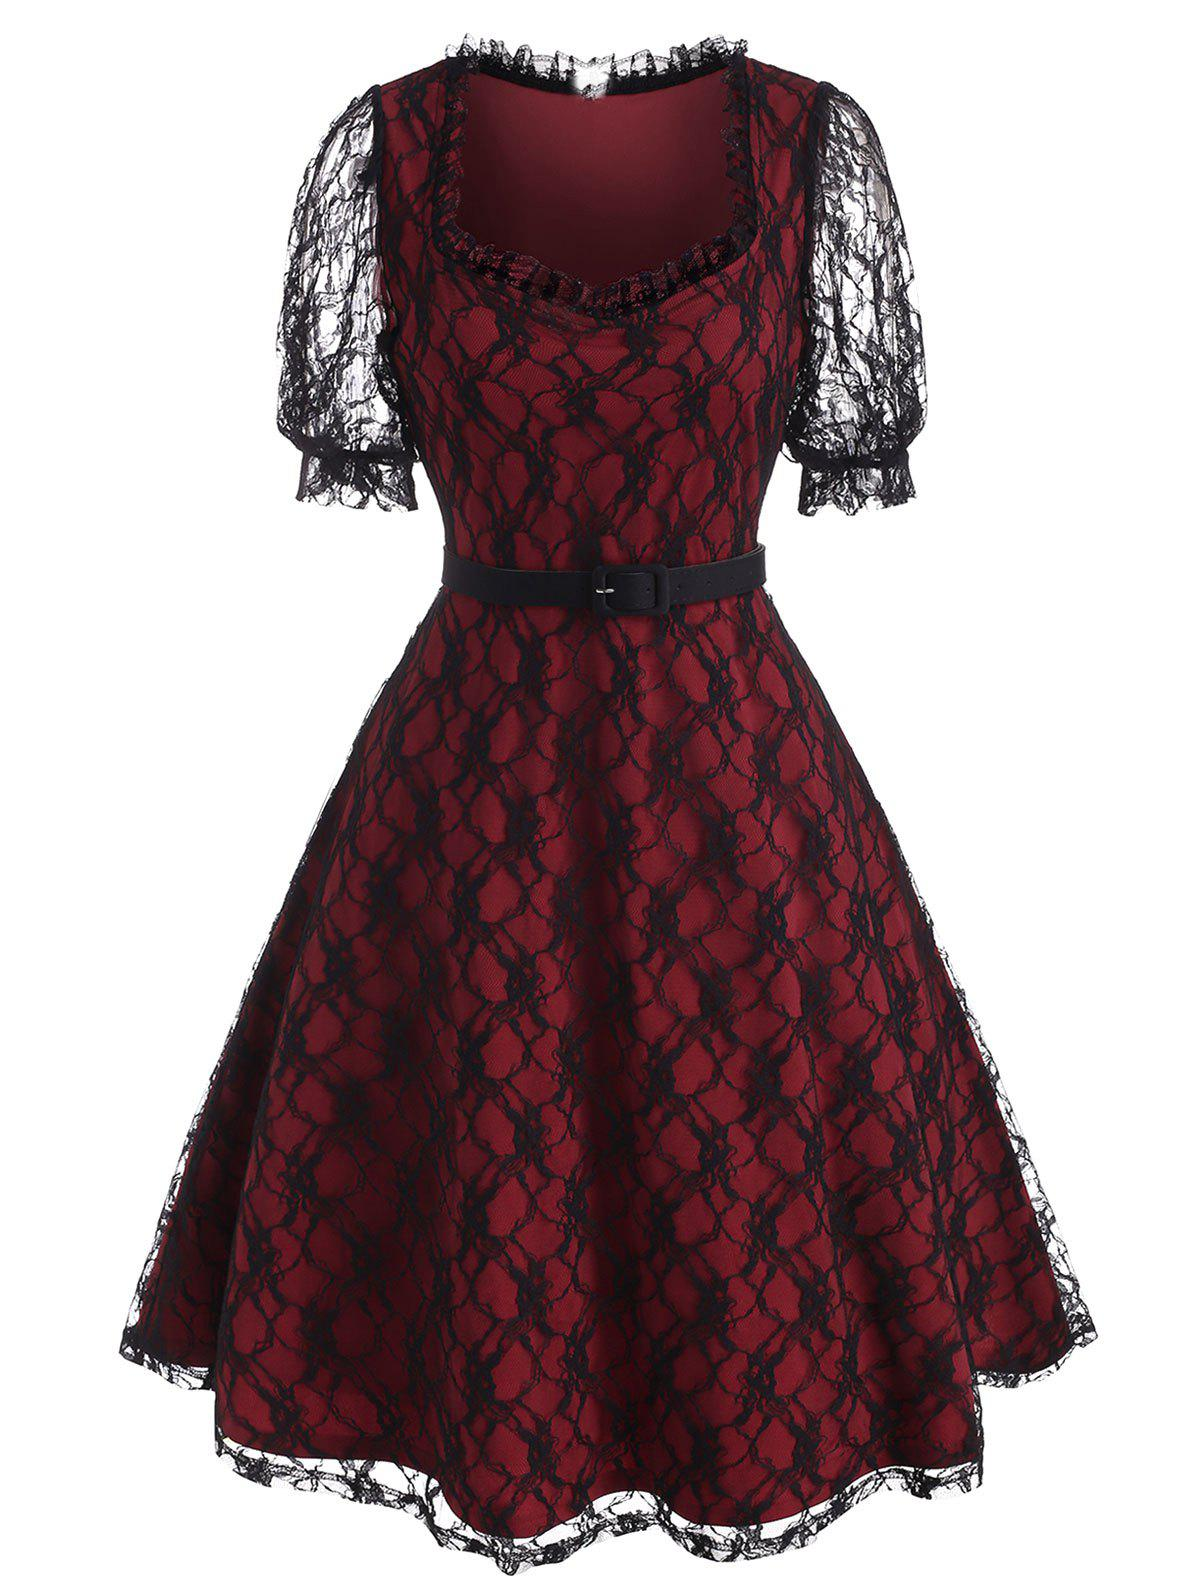 Puff Sleeve Overlay Lace Mid Calf Dress - RED L